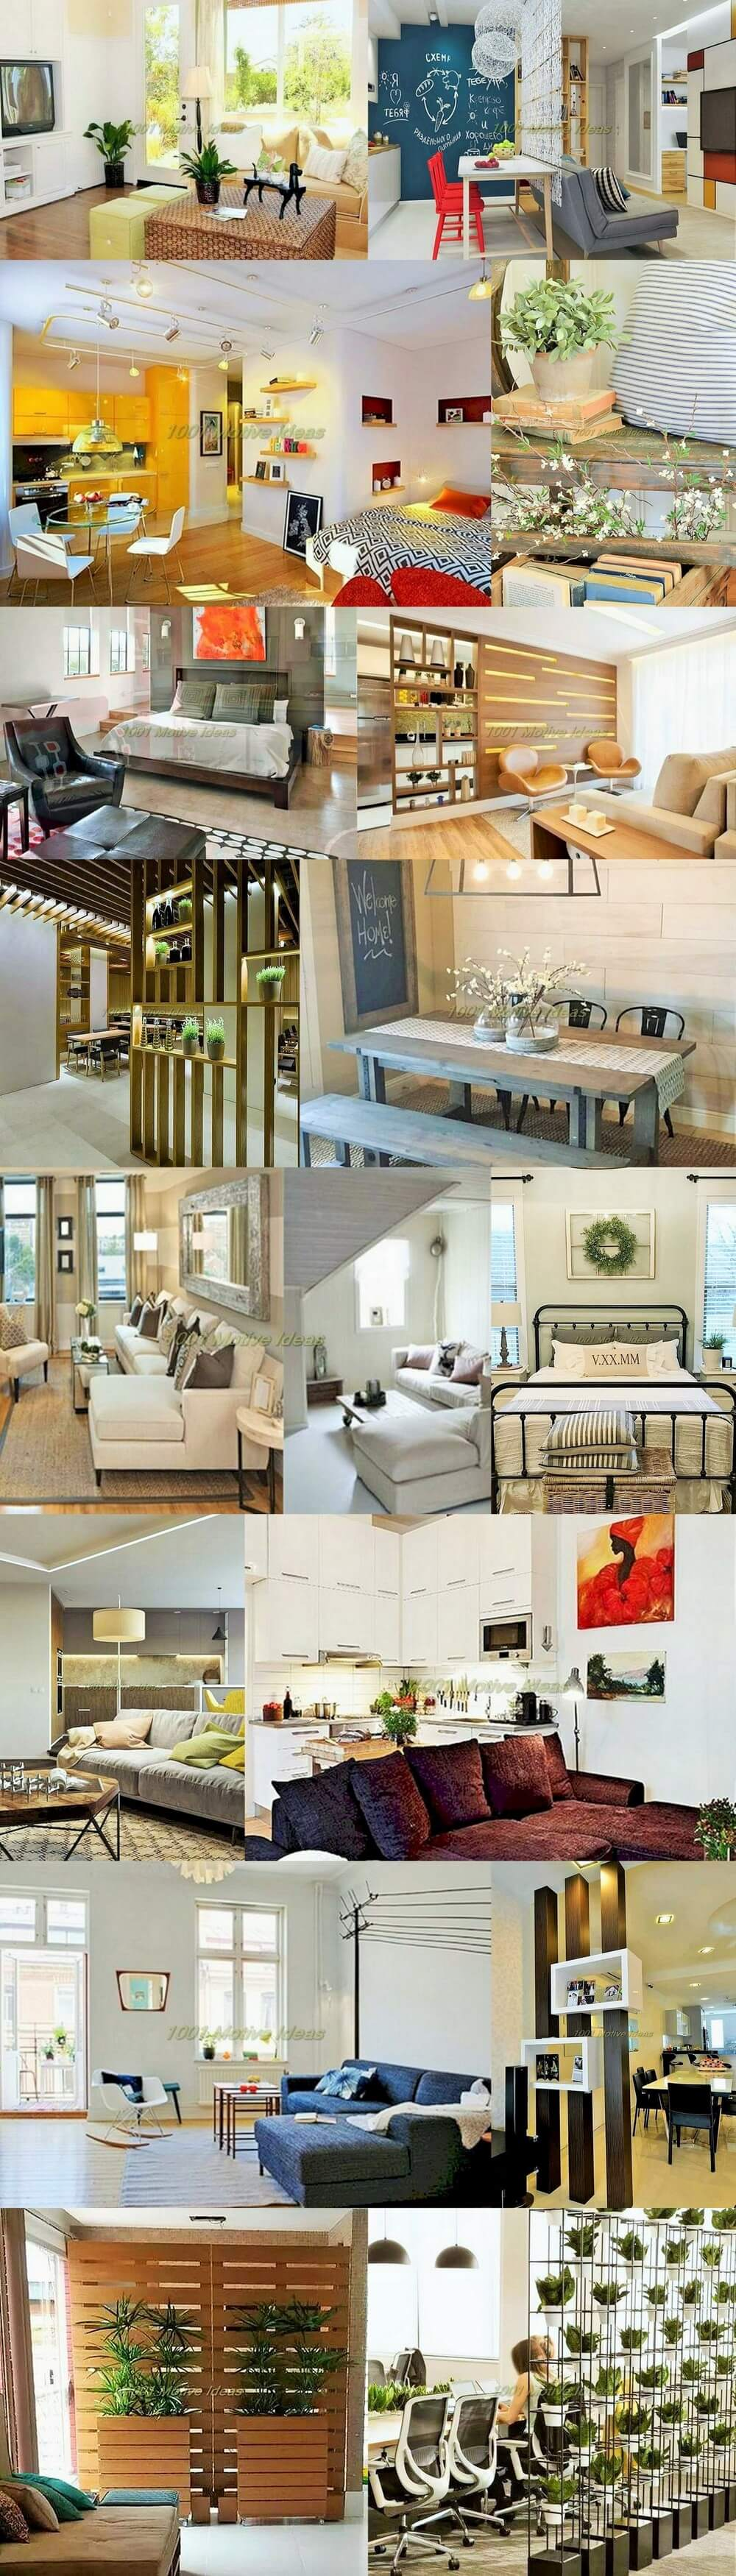 Home-Decor-Collections-Best-Ideas